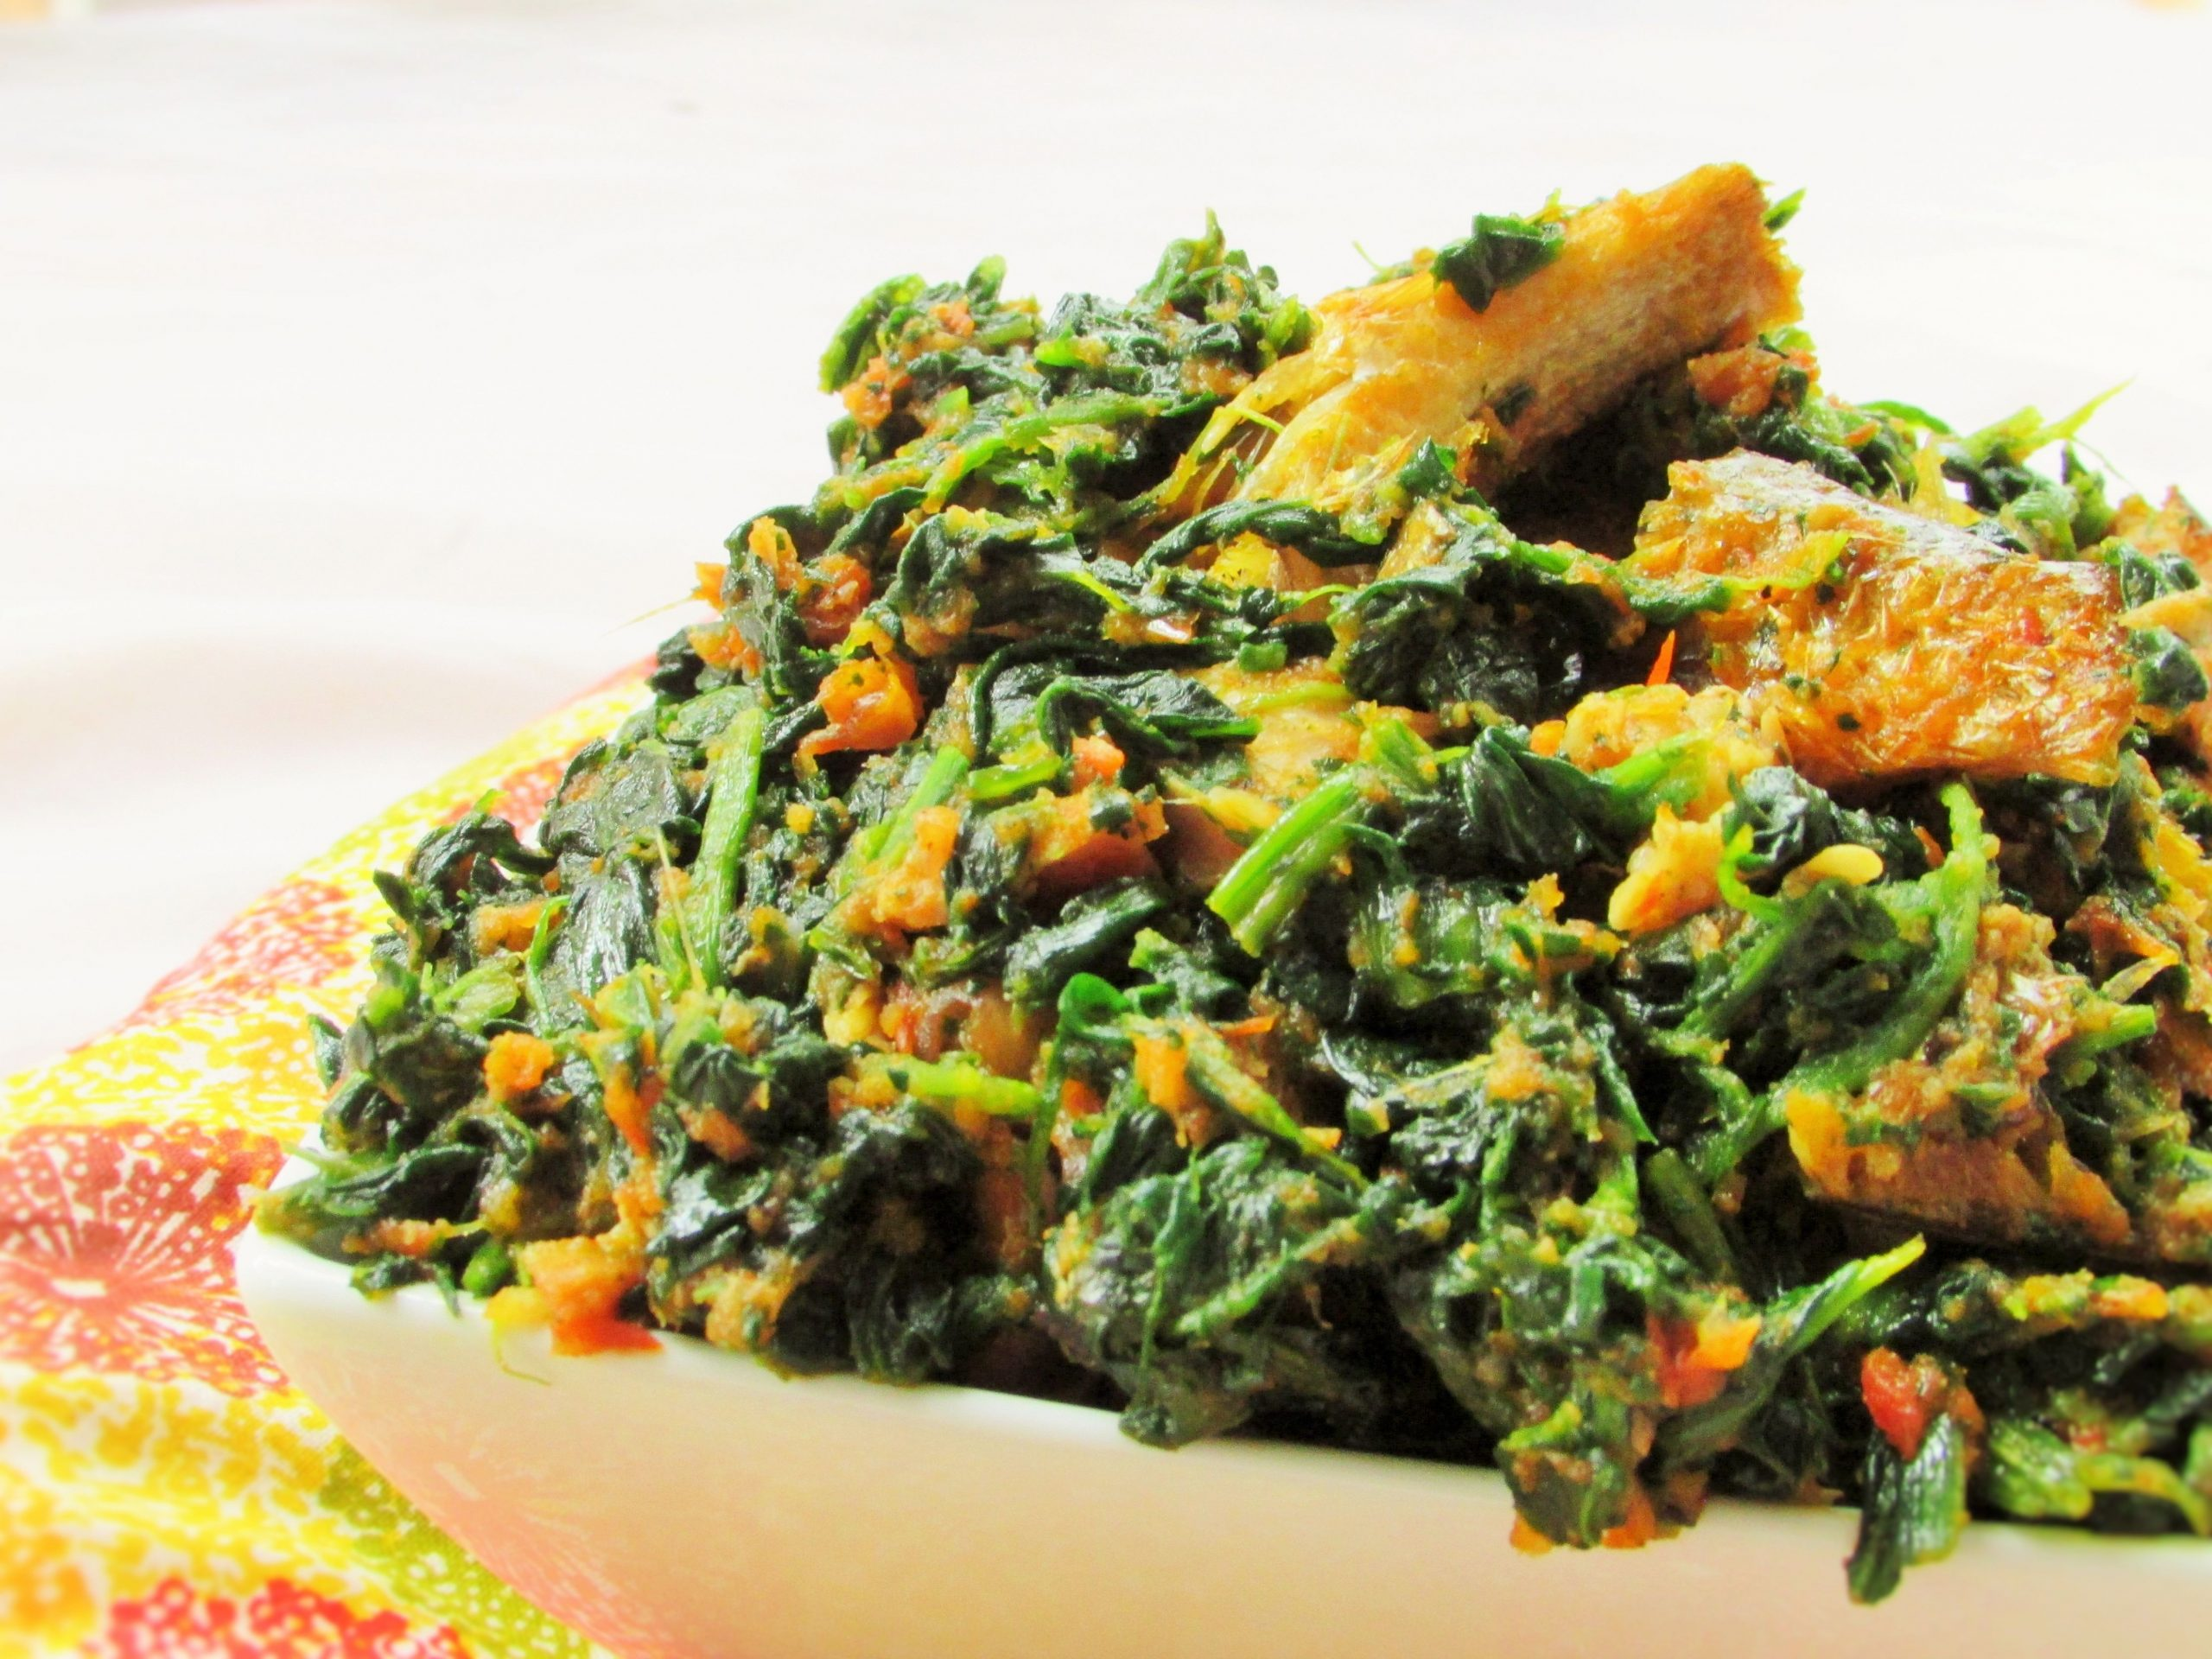 Efo' Riro (No Reason Why I Boiled It)